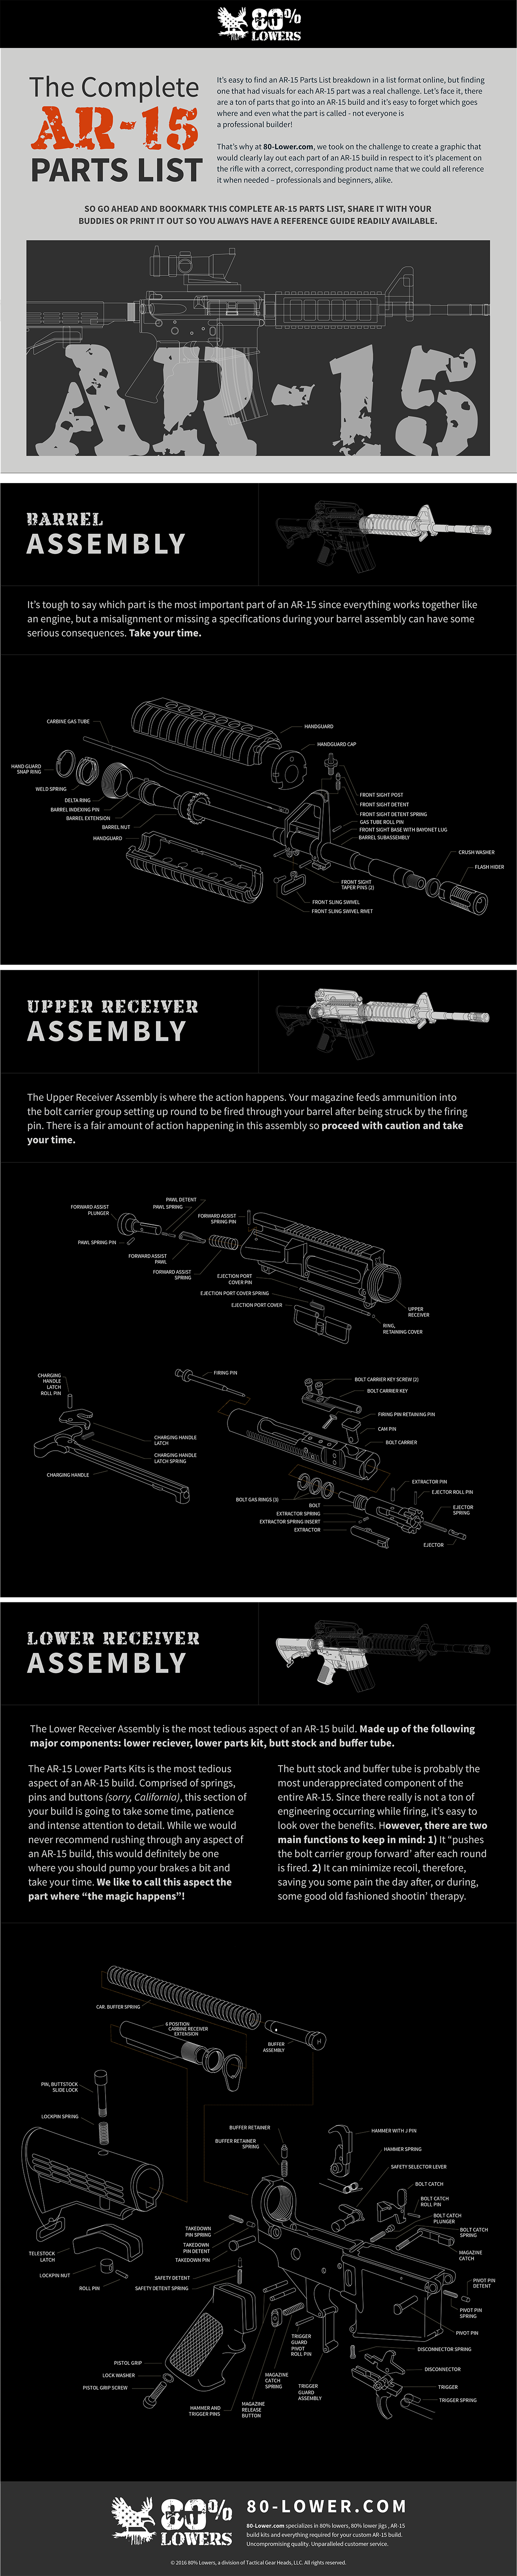 The Complete AR 15 Parts List & AR 15 Build List